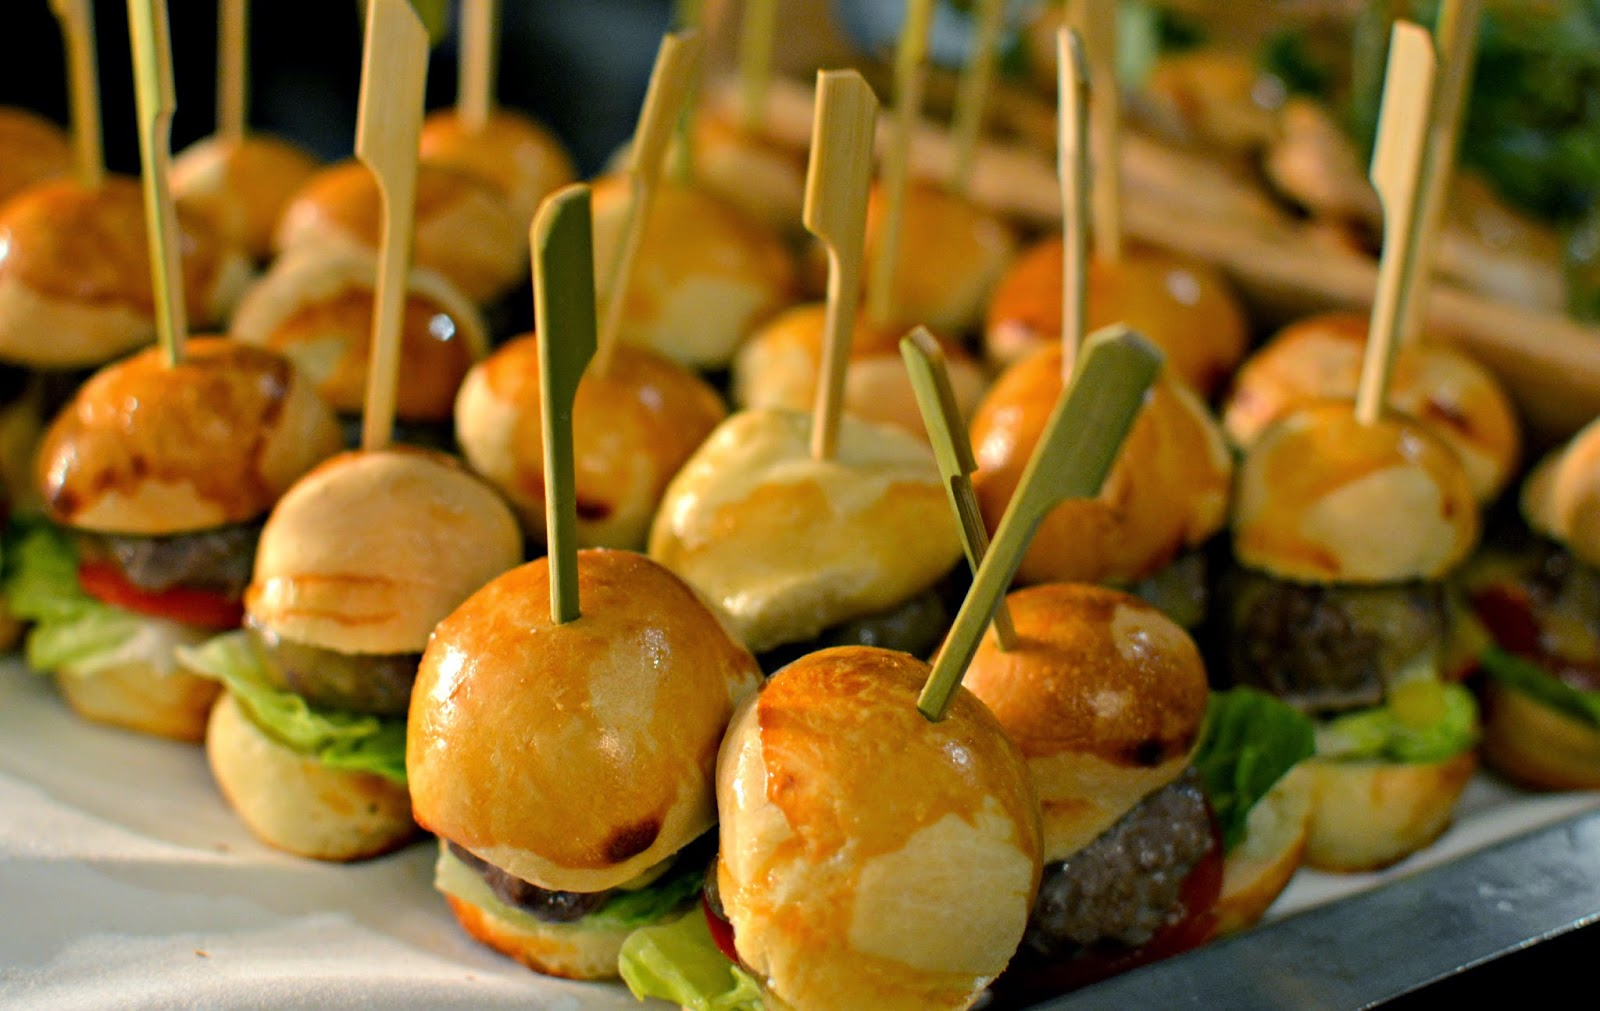 Canapes at Sanctum Soho fashion art event